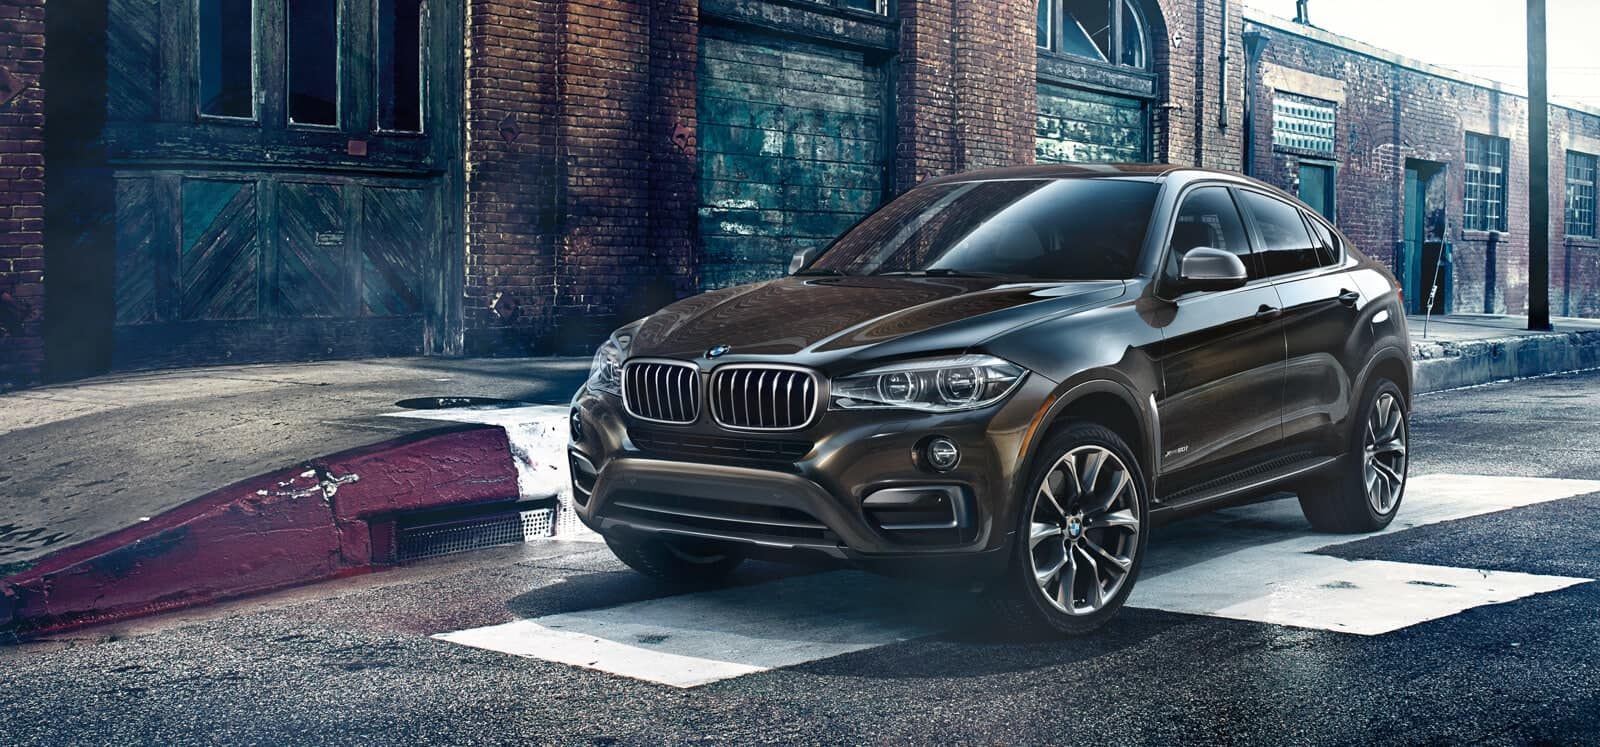 BMW X6, Eatontown NJ